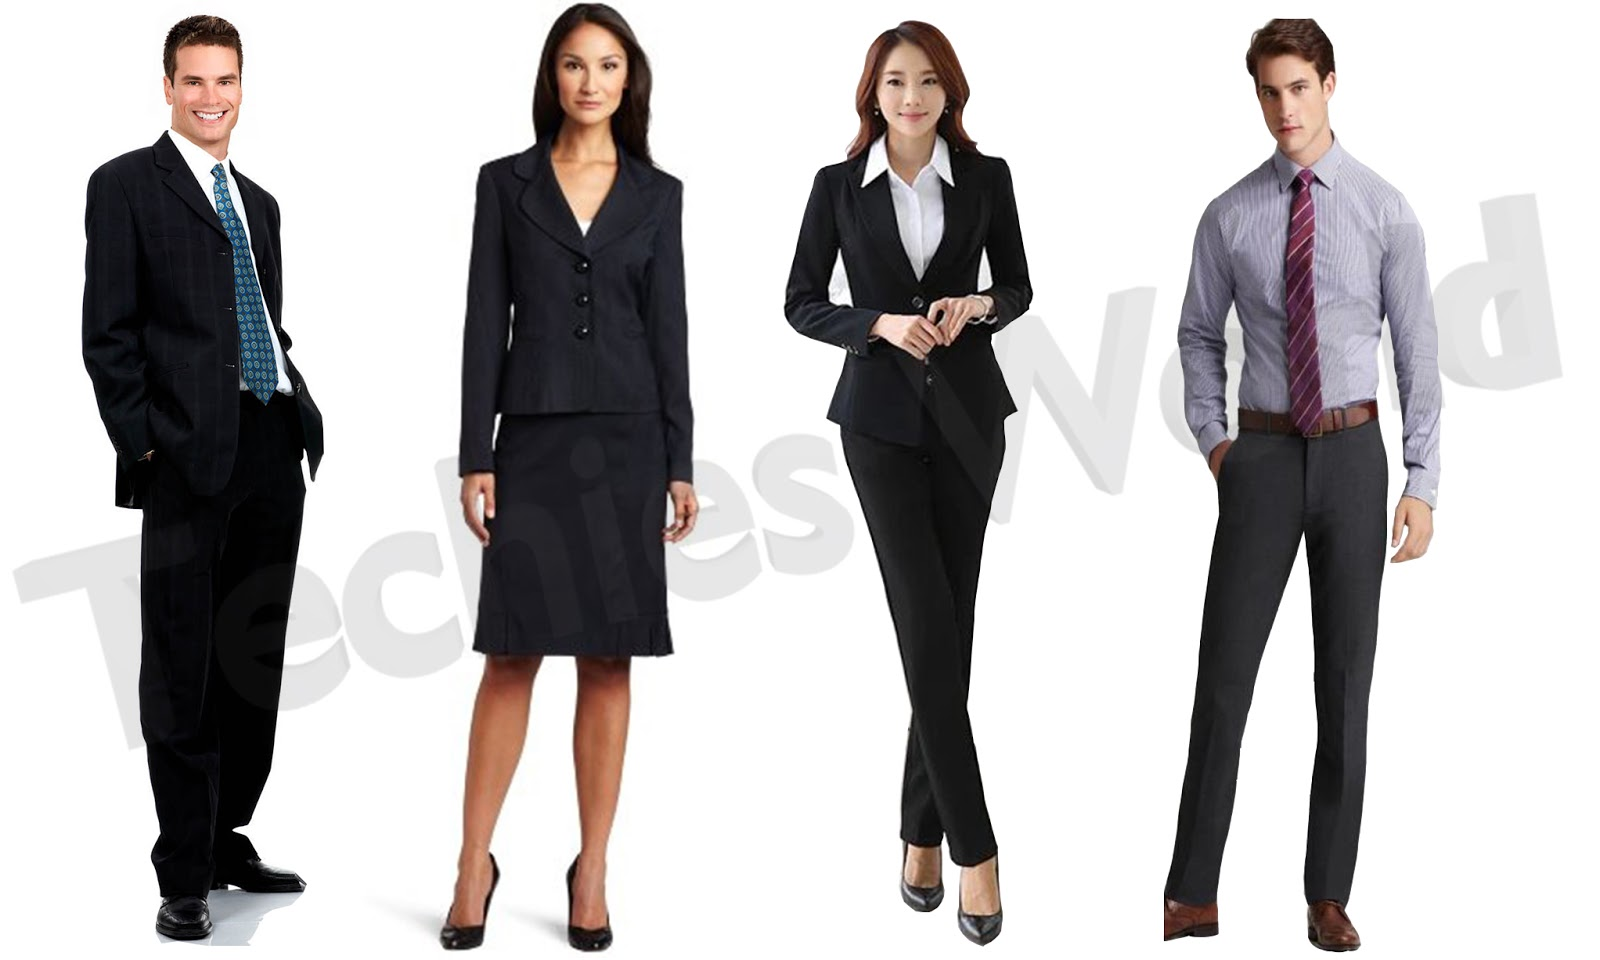 What To Wear To Interview For Women